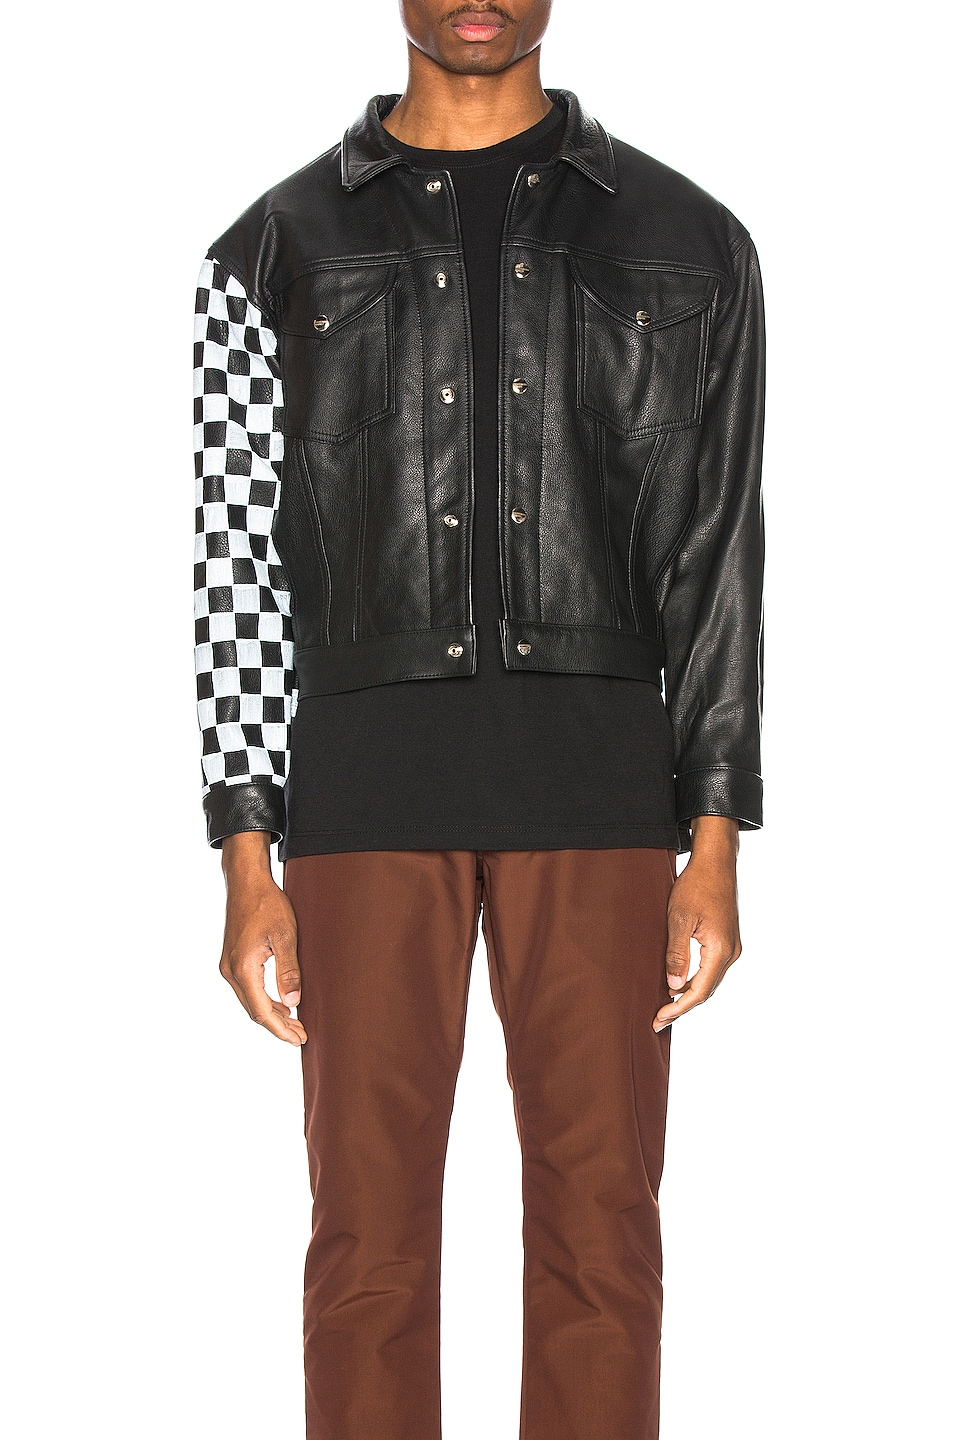 50%OFF Enfants Riches Deprimes Checkered Sleeve Leather Jacket Black & White